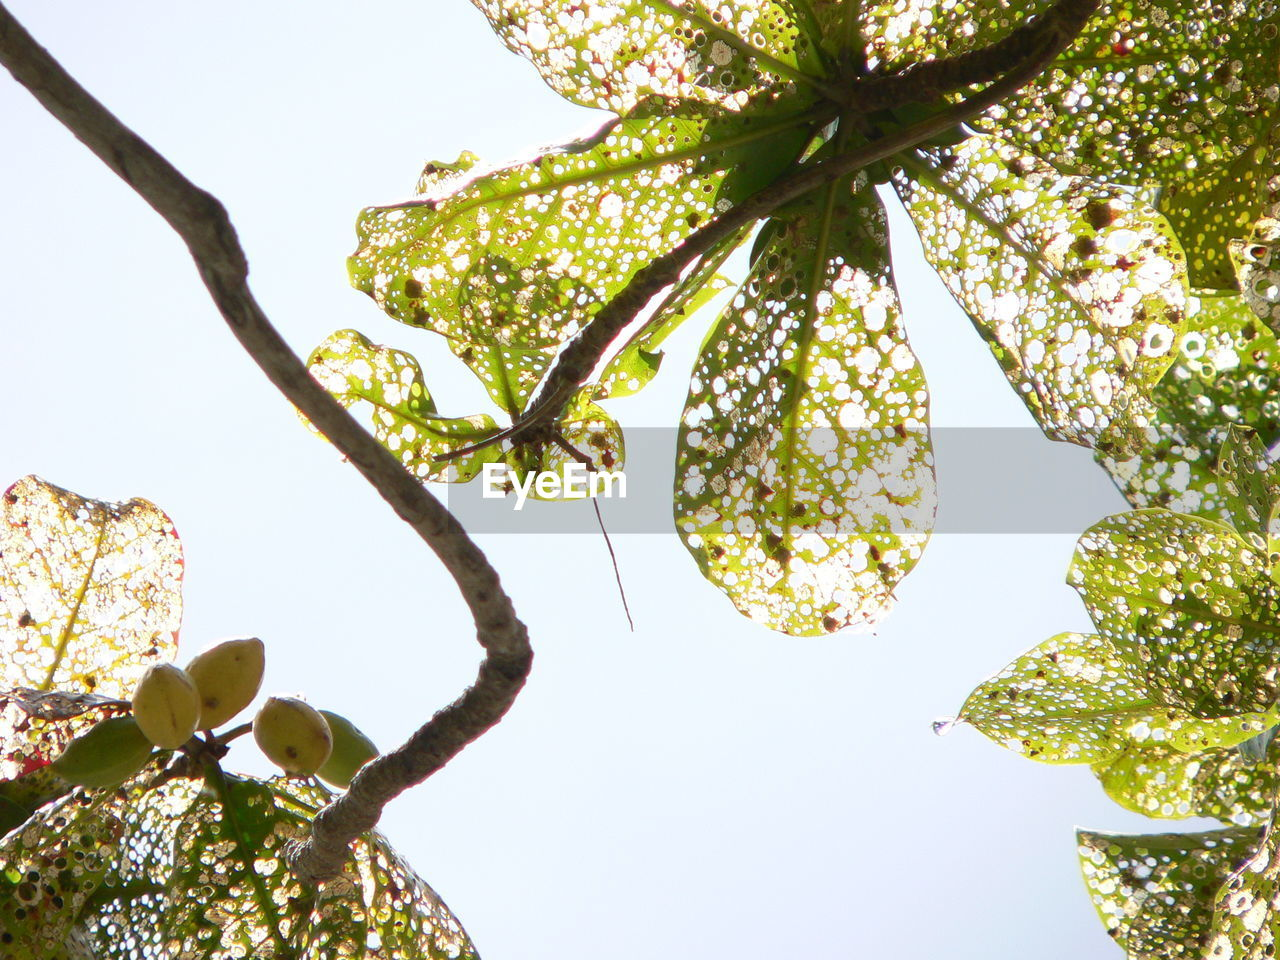 plant, tree, low angle view, growth, sky, branch, nature, beauty in nature, no people, day, plant part, leaf, clear sky, outdoors, green color, tranquility, sunlight, close-up, leaves, freshness